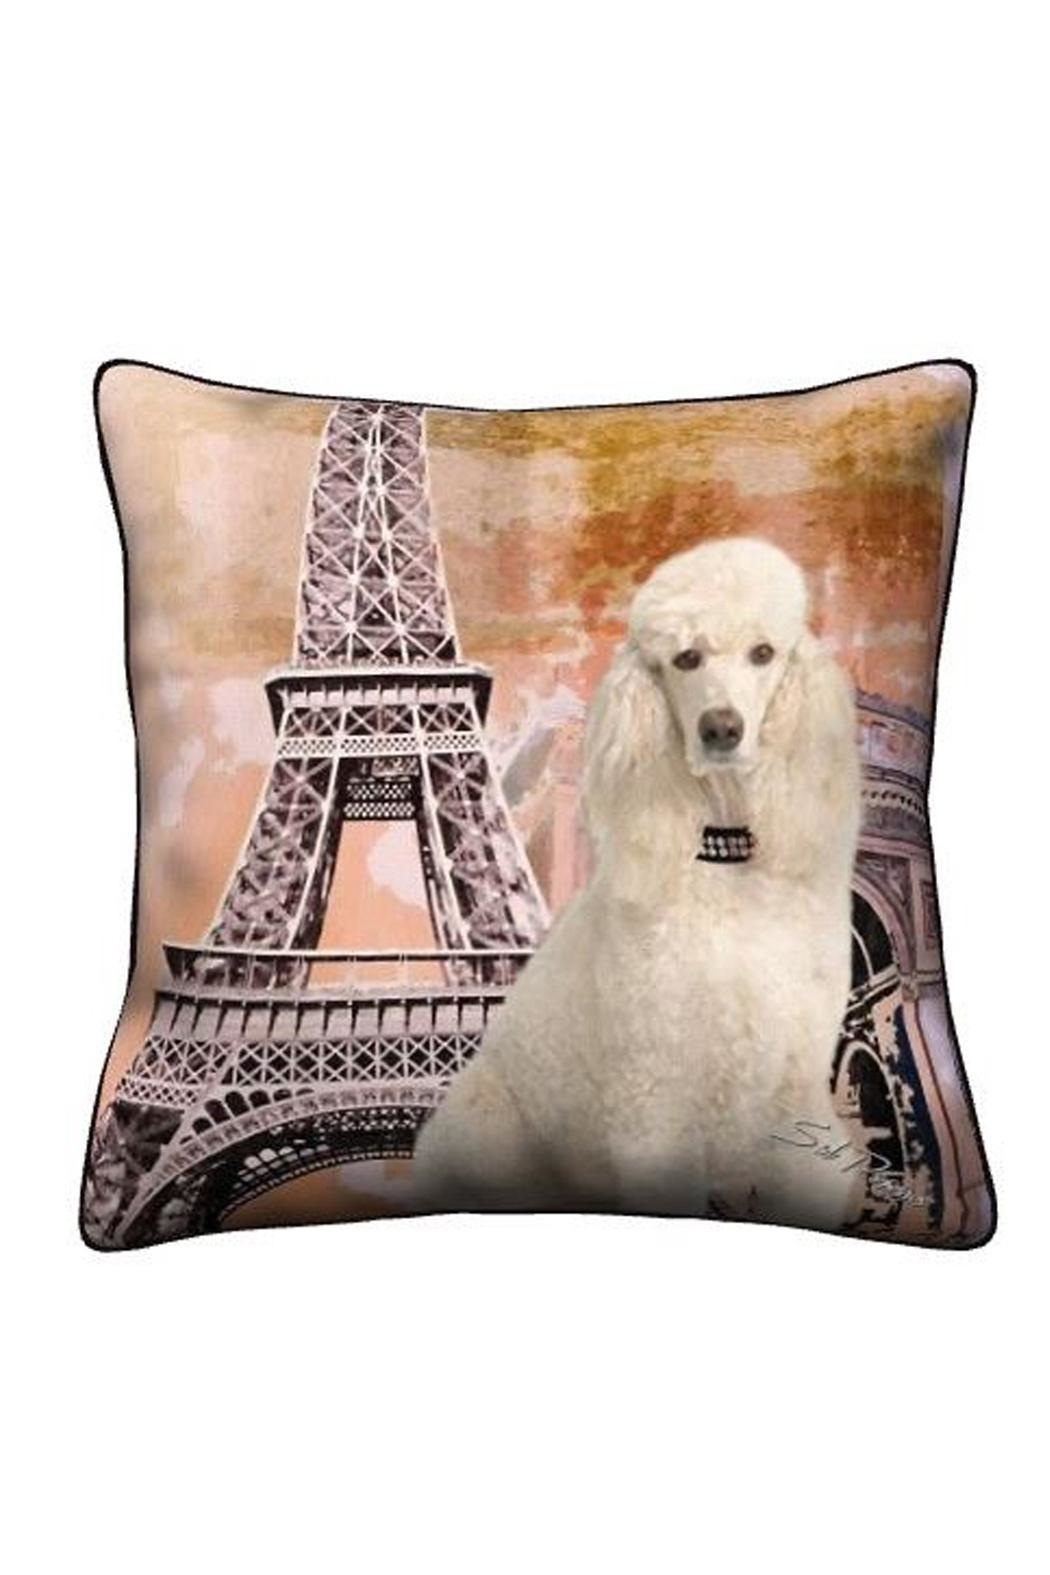 Patricia's Presents White Poodle Pillow - Main Image